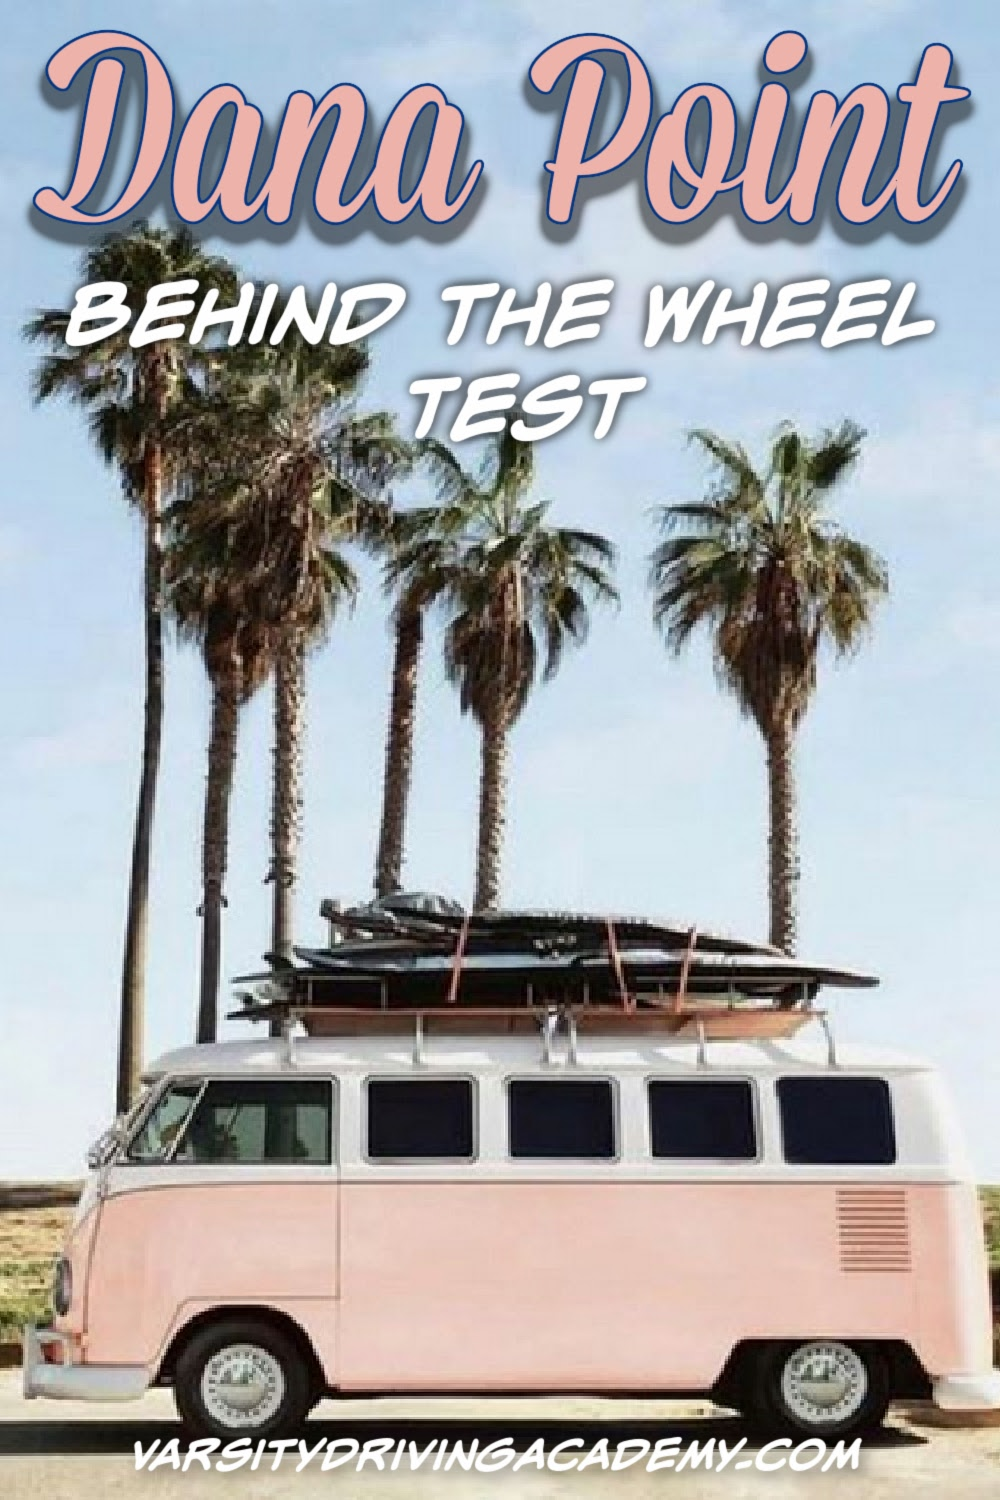 The best behind the wheel test in Dana Point tips and tricks will help you pass the final test, get your license, and make you a safer driver.